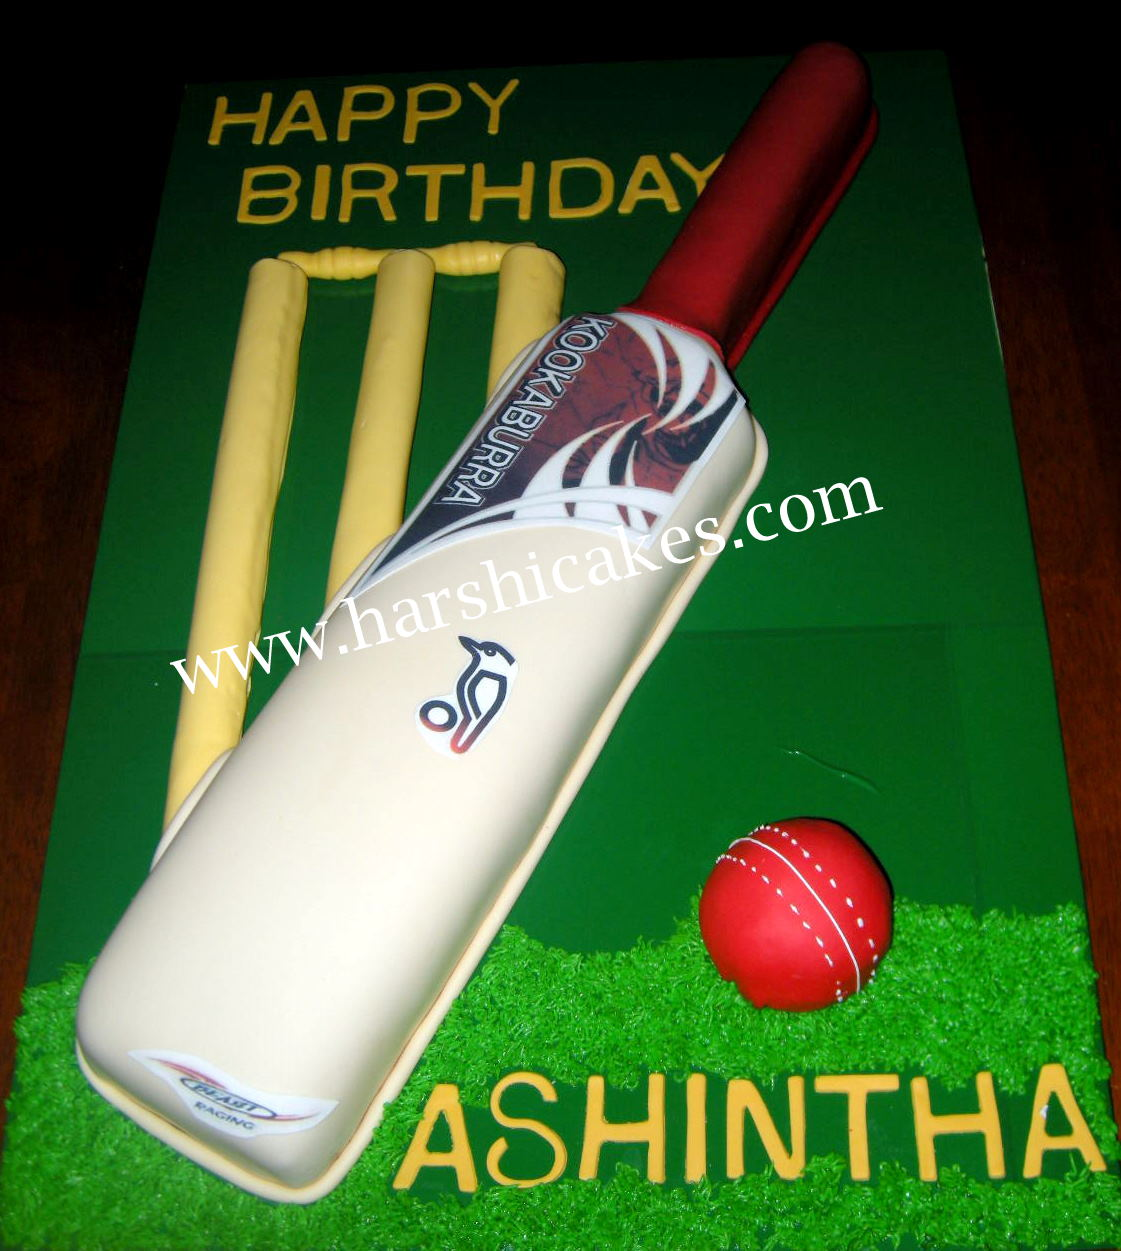 Harshi s Cakes & Bakes: Kookaburra Cricket Bat for Ashintha